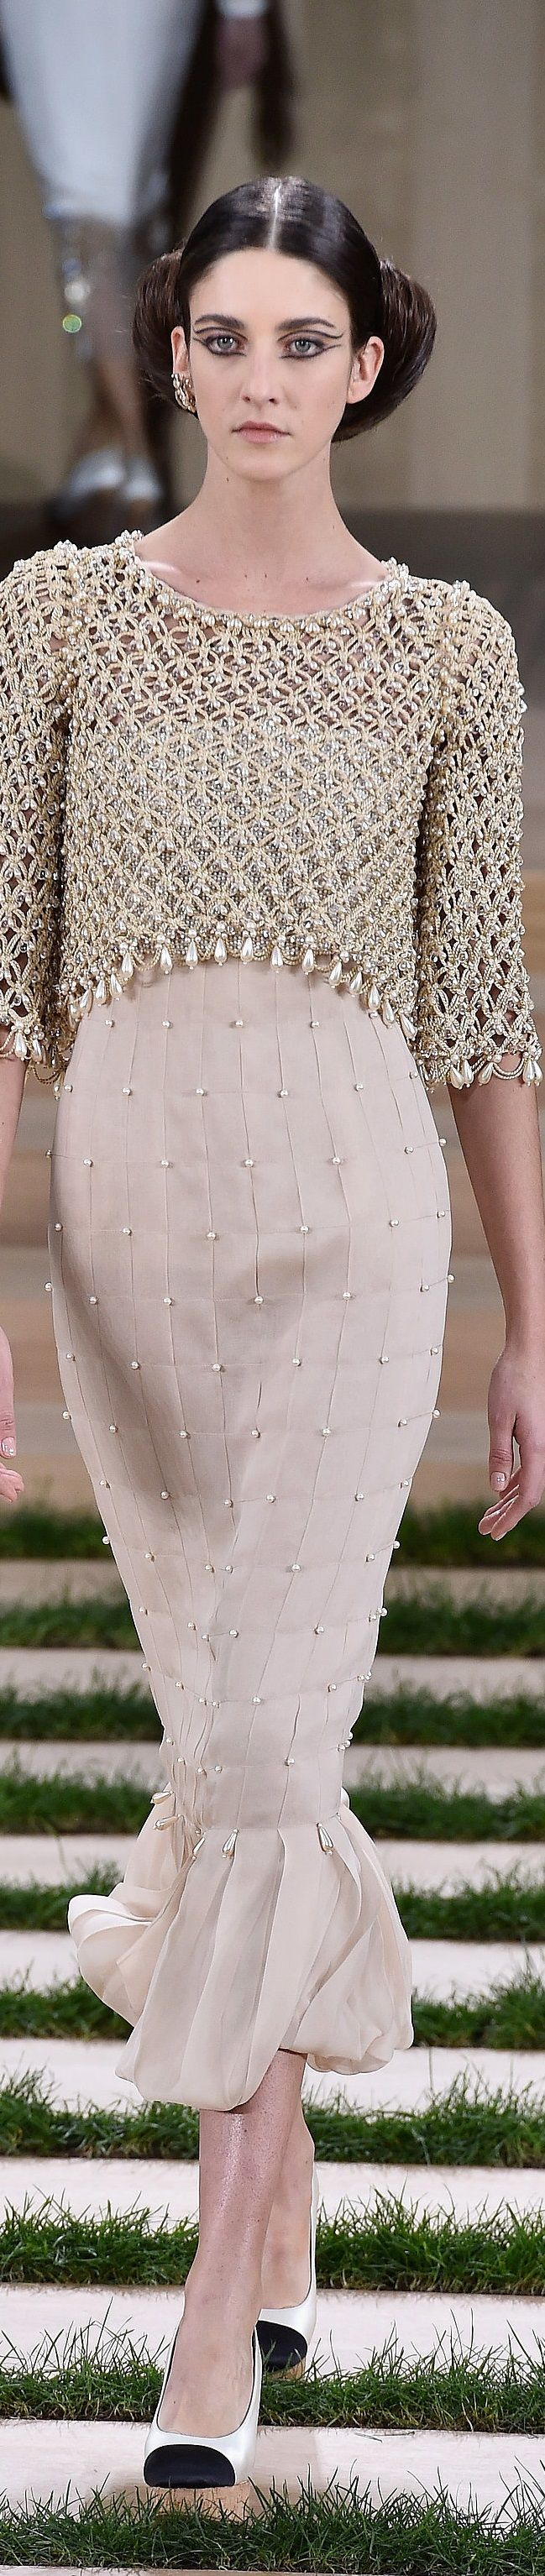 Chanel Spring 2016 Couture...Gorgeous embellishments.Cheaper to have custom-made than purchasing from salon.